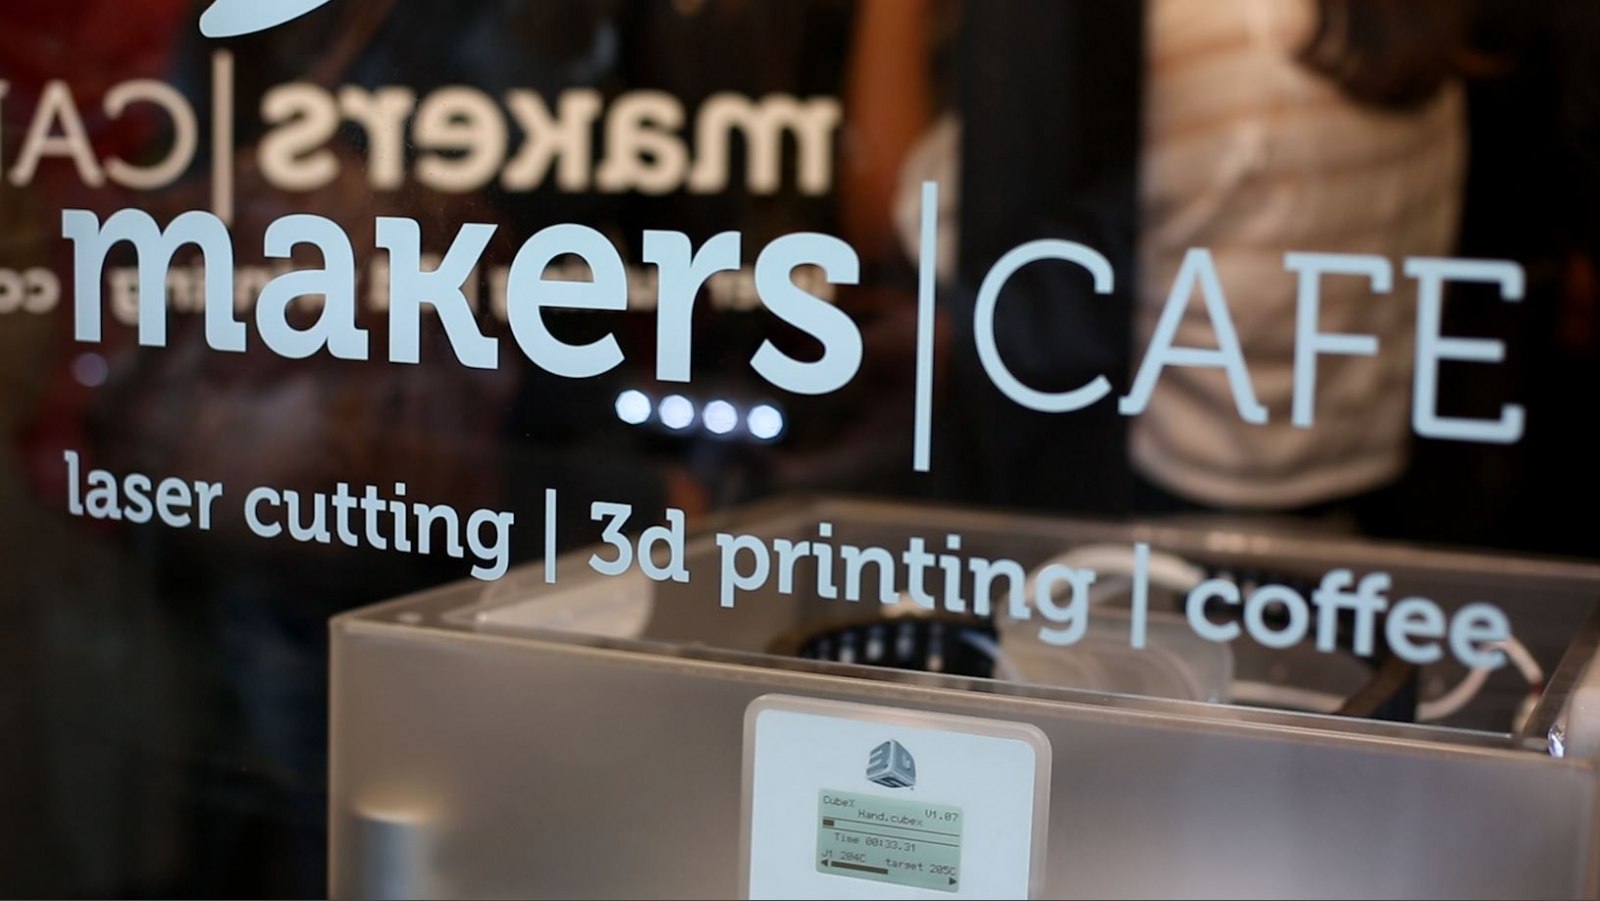 MakersCafe: UK's First 3D-Printing Café Opens in Shoreditch